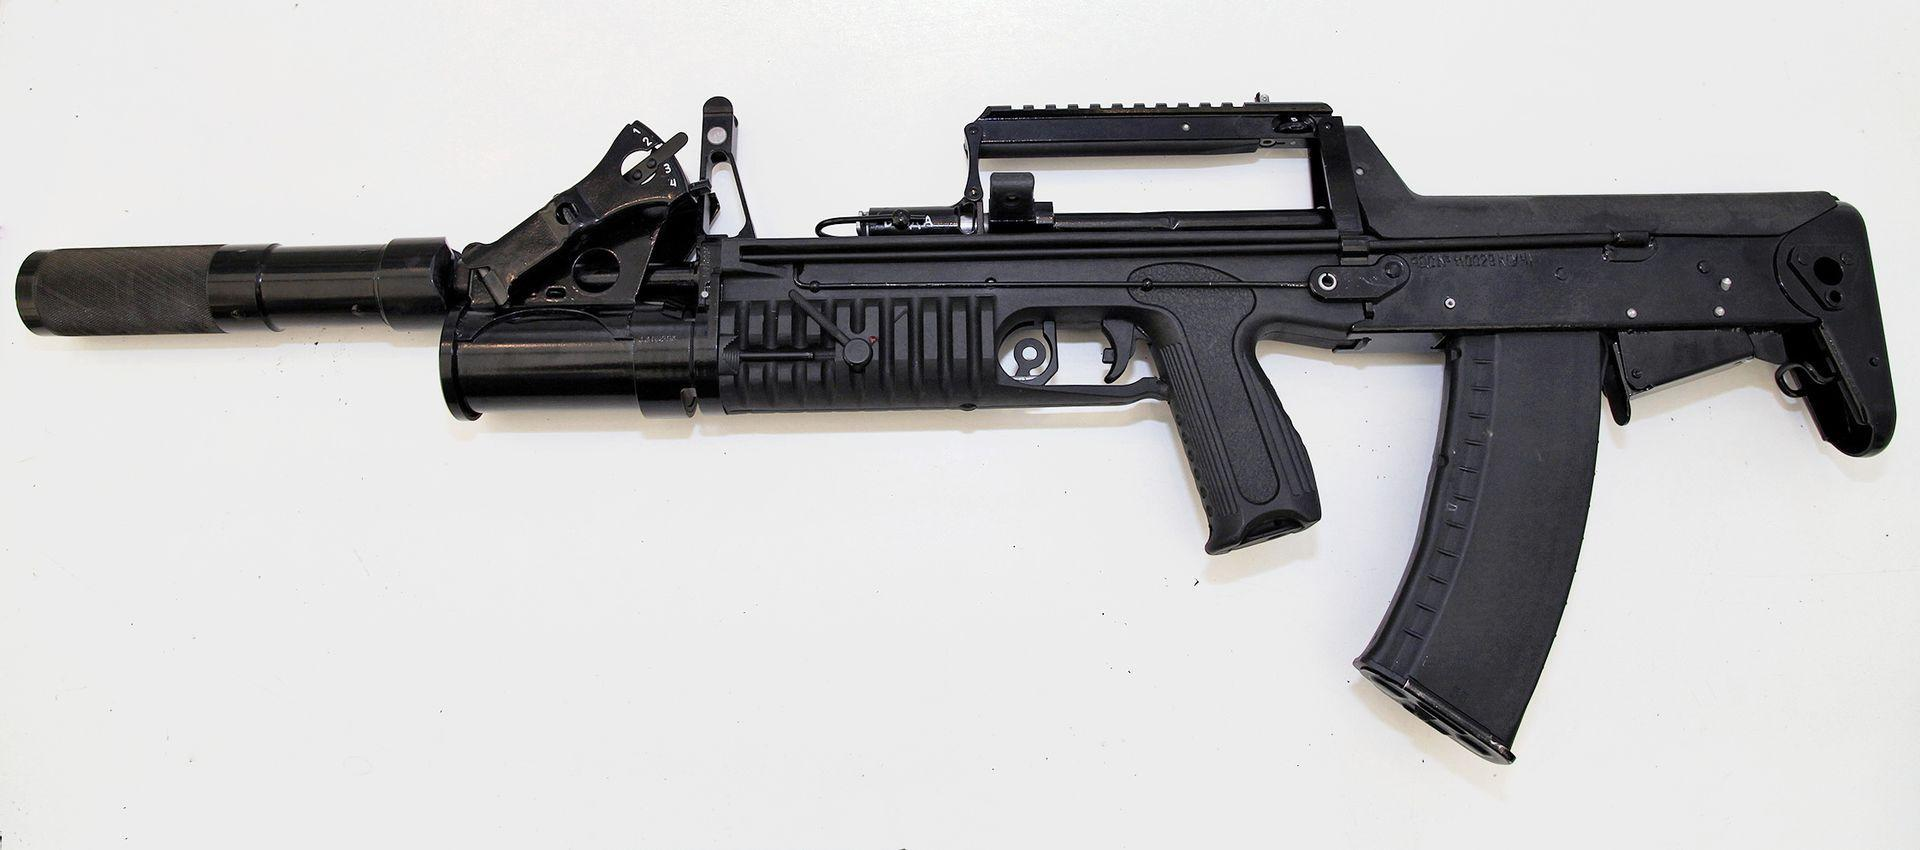 ADS amphibious assault rifle chambered in 5.45 mm caliber